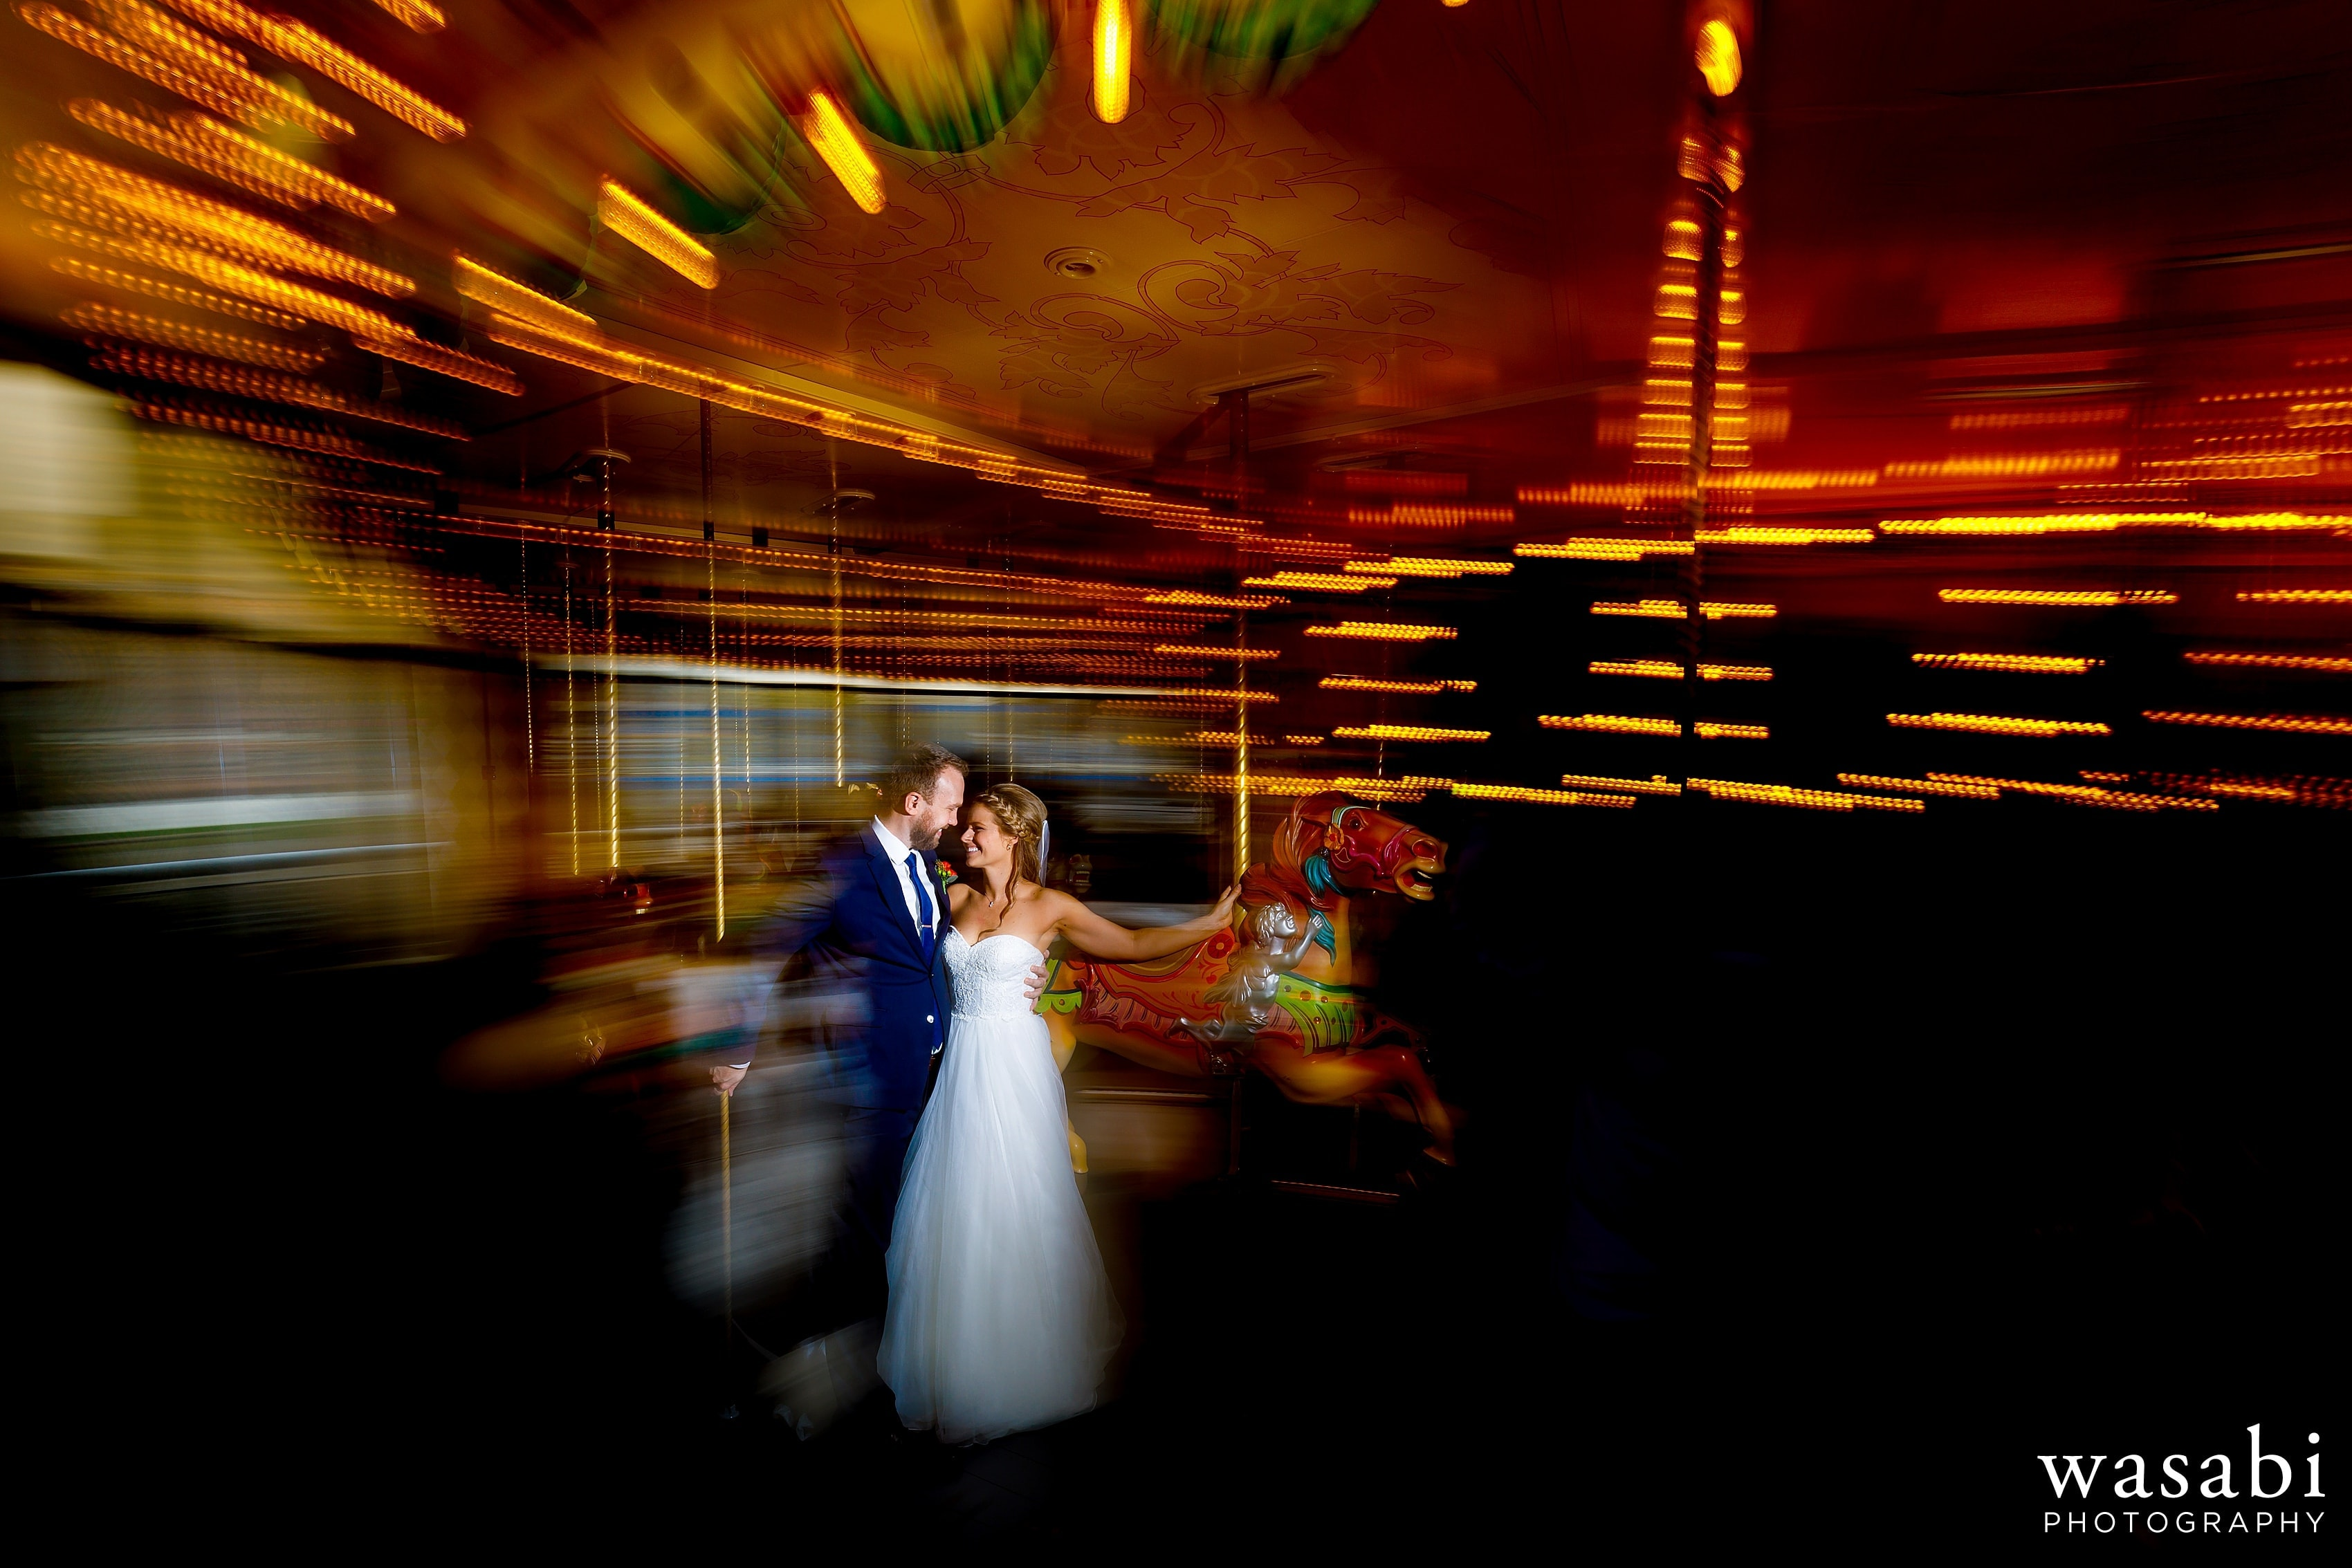 Bride and groom portrait at Grand Rapids Public Museum before their wedding